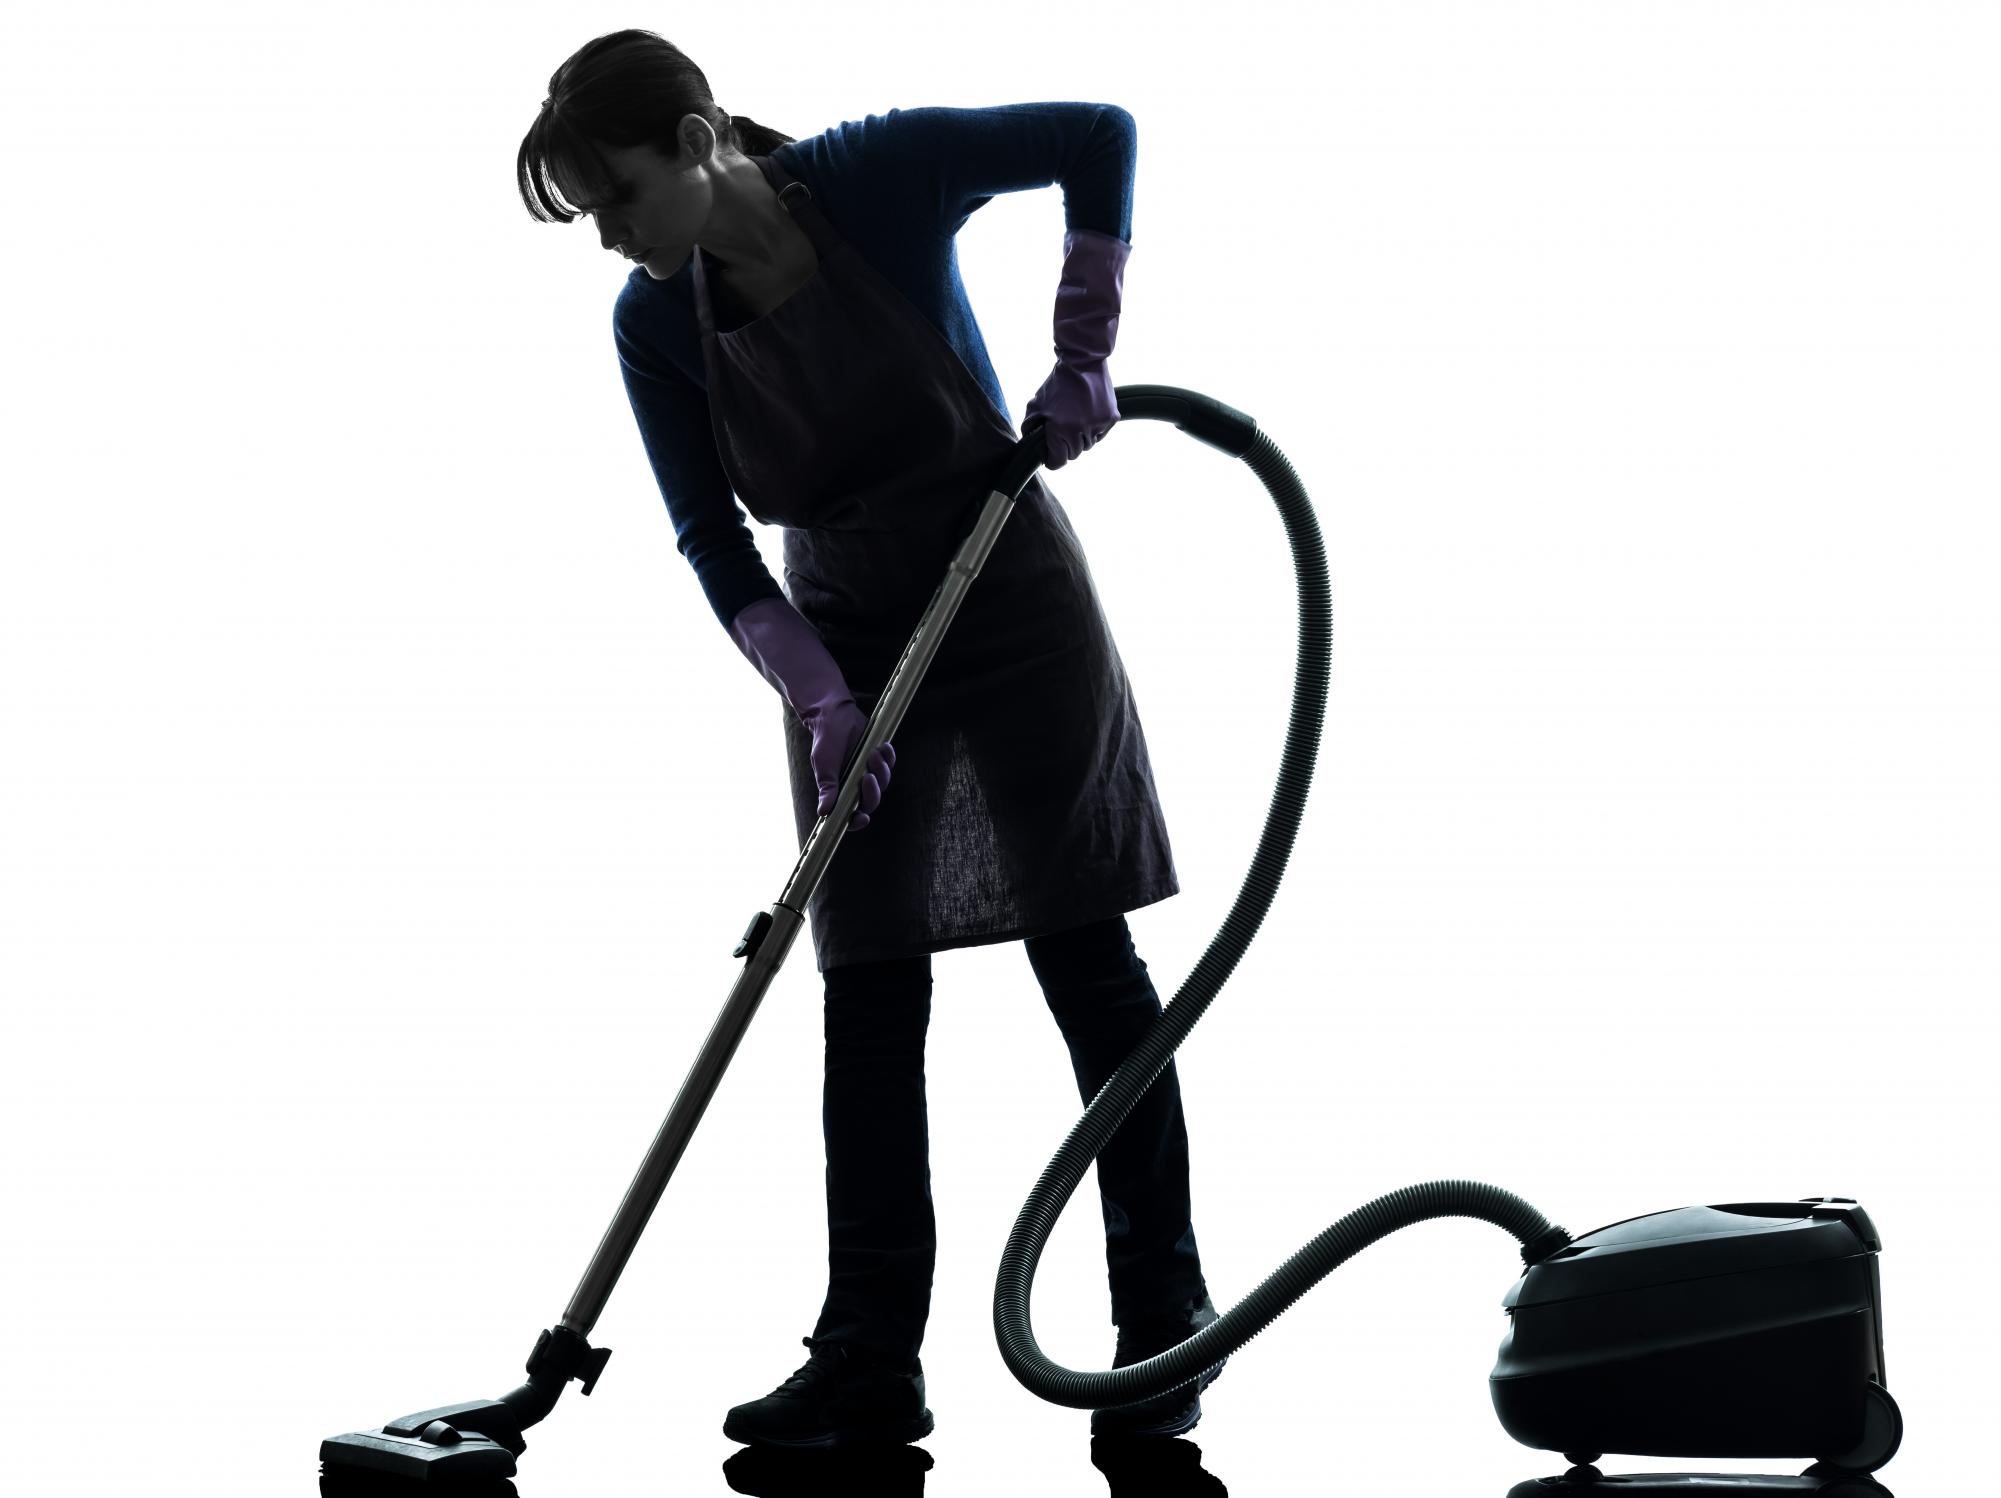 maitland carpet cleaning | A lady cleaner cleaning the floor